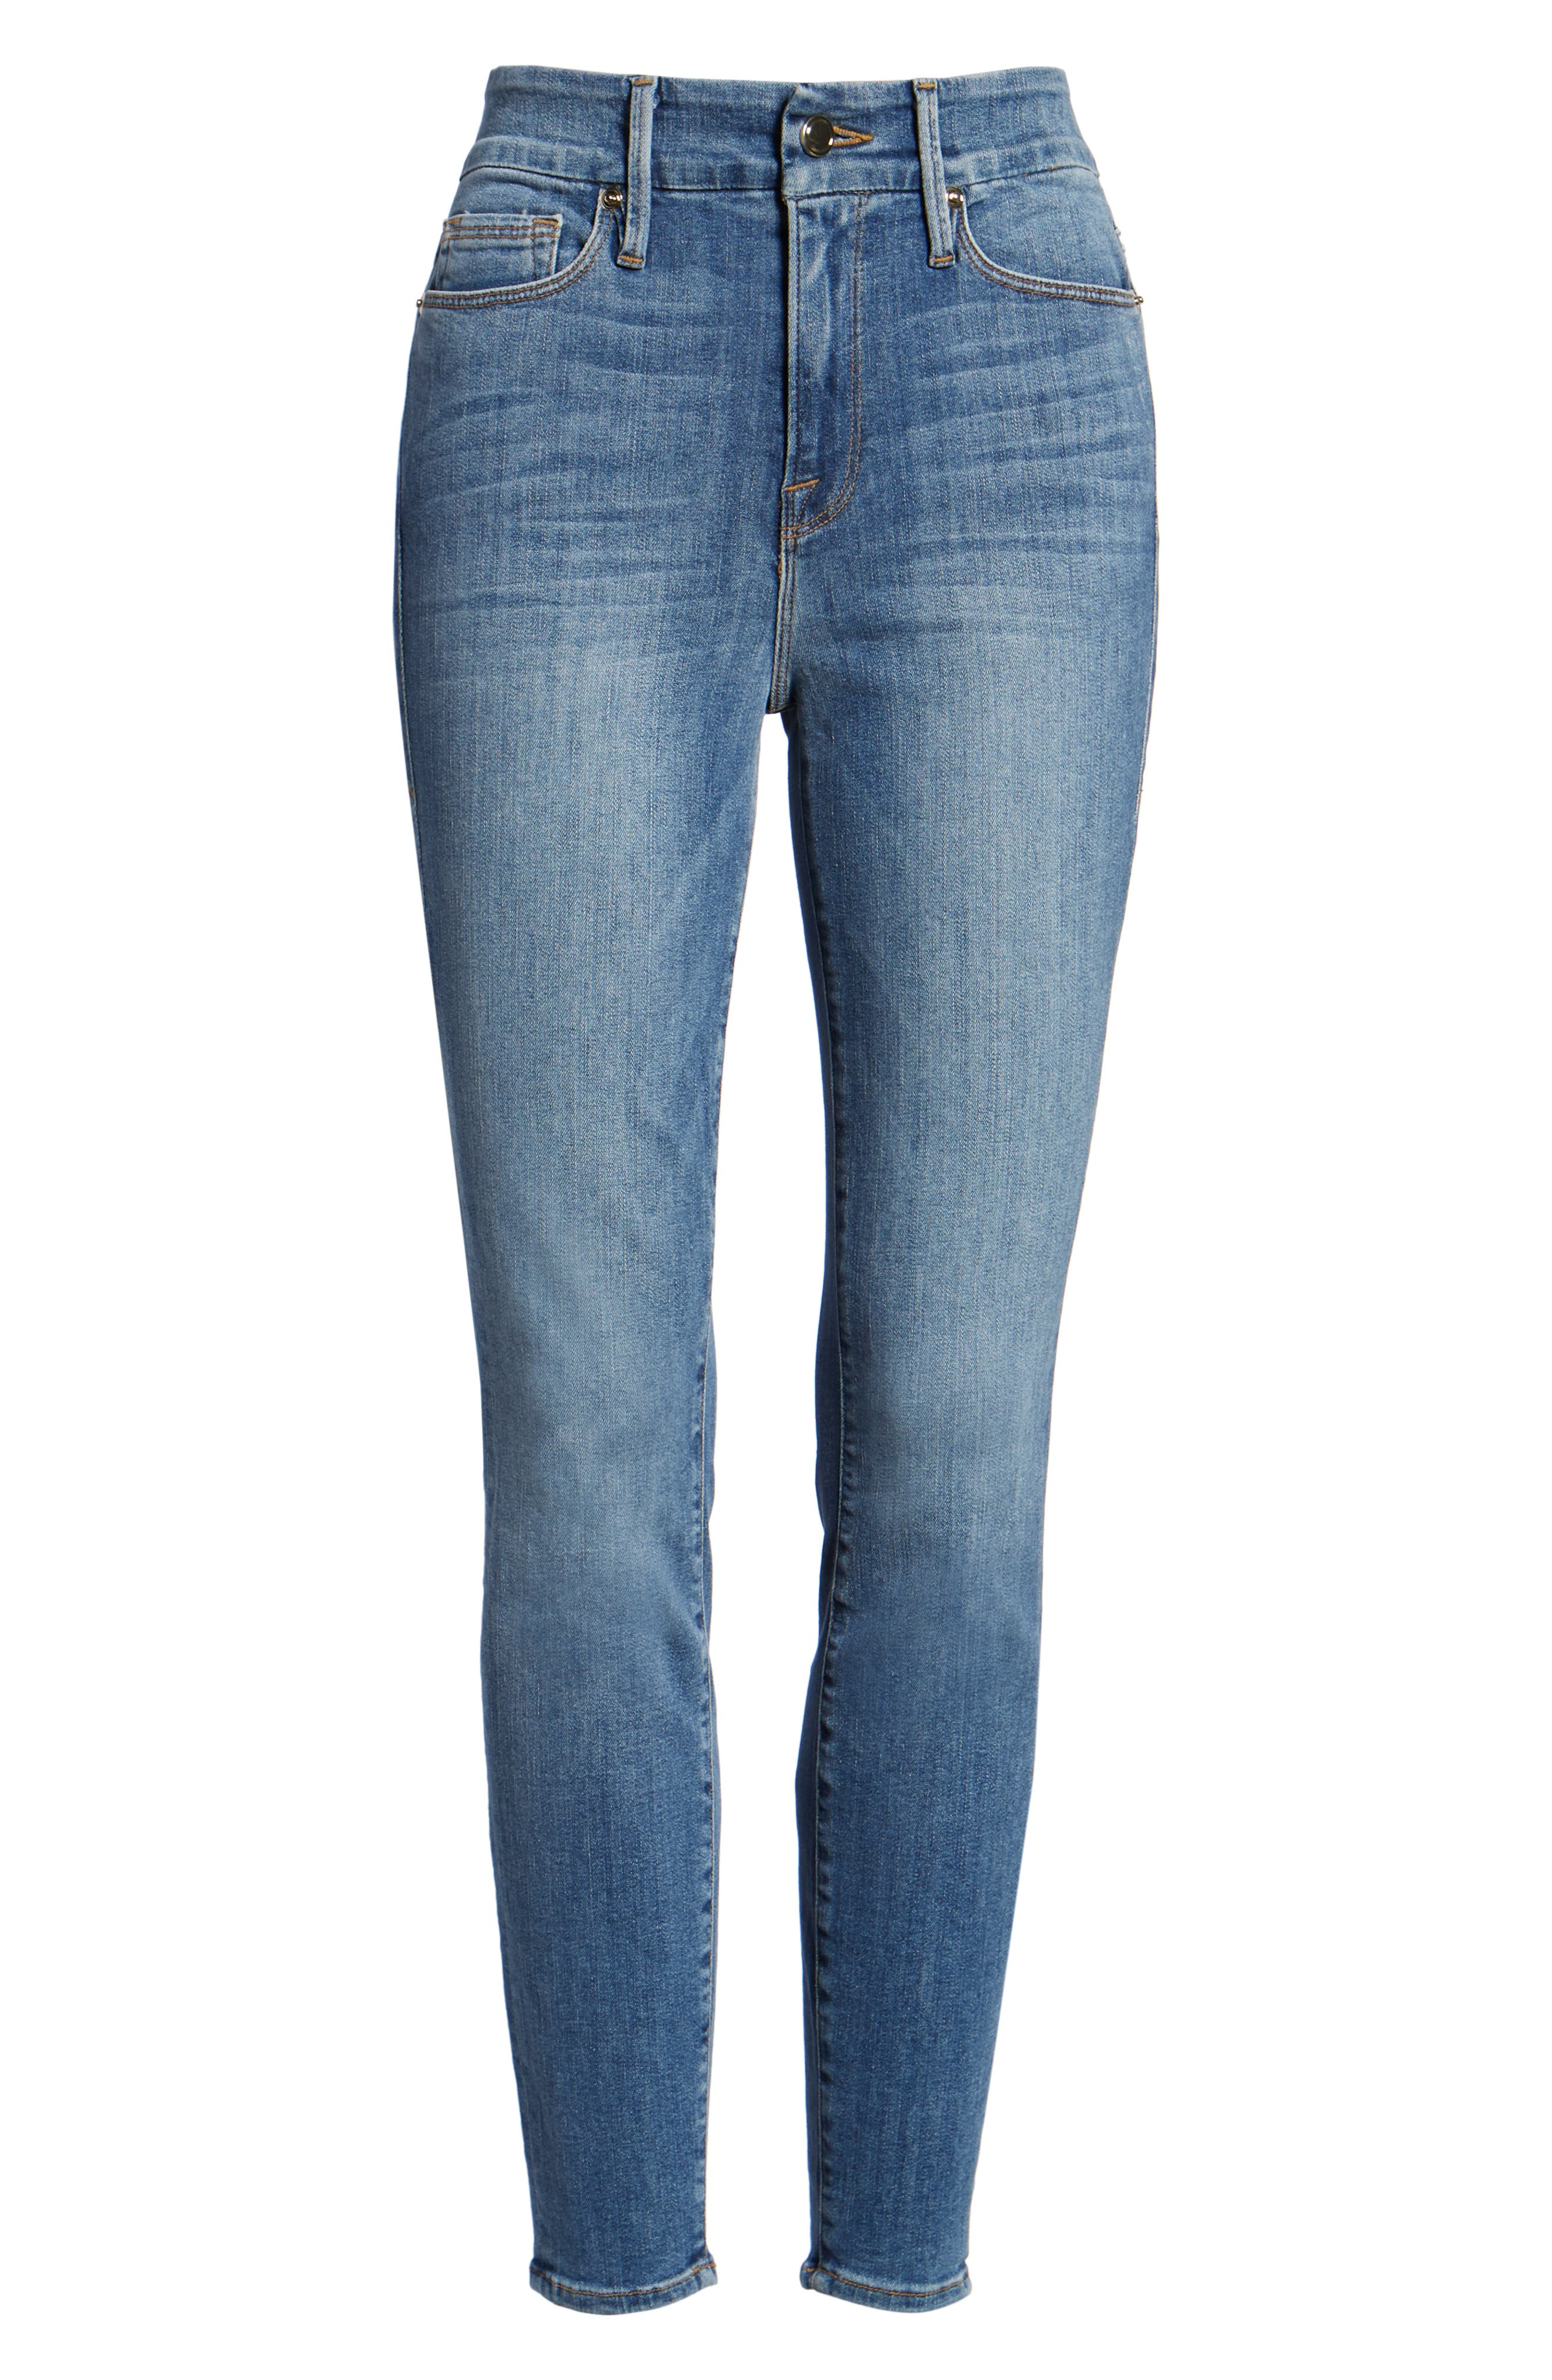 Good Legs High Waist Skinny Jeans (Blue 107),                             Alternate thumbnail 6, color,                             401